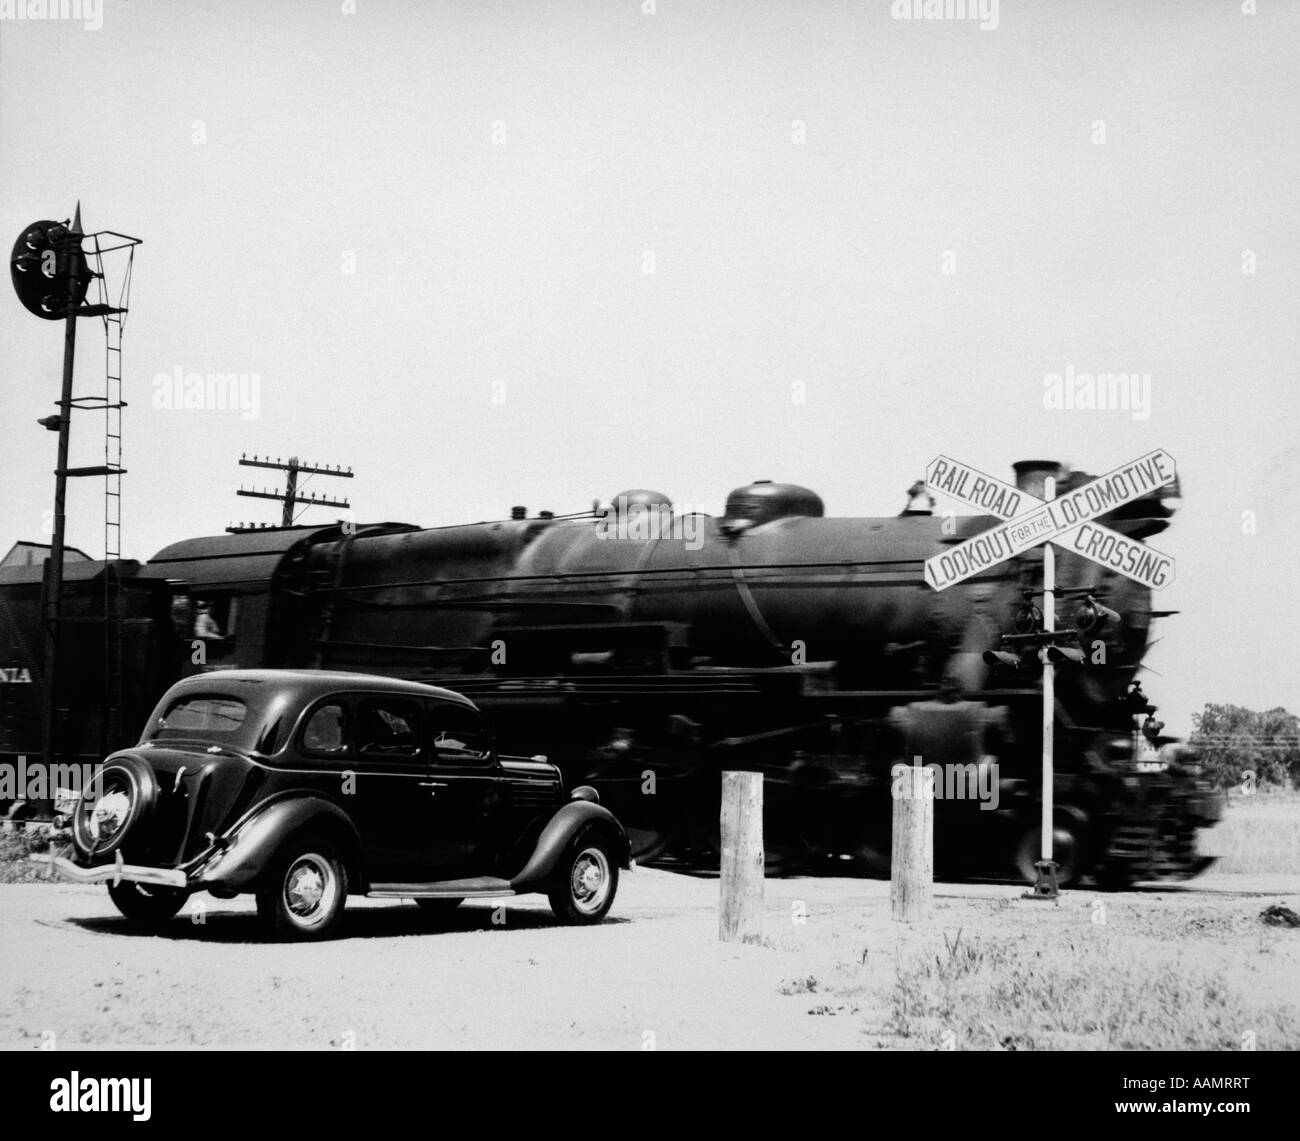 1930s CAR STOPPED AT RAILROAD CROSSING WITH FREIGHT TRAIN SPEEDING BY - Stock Image